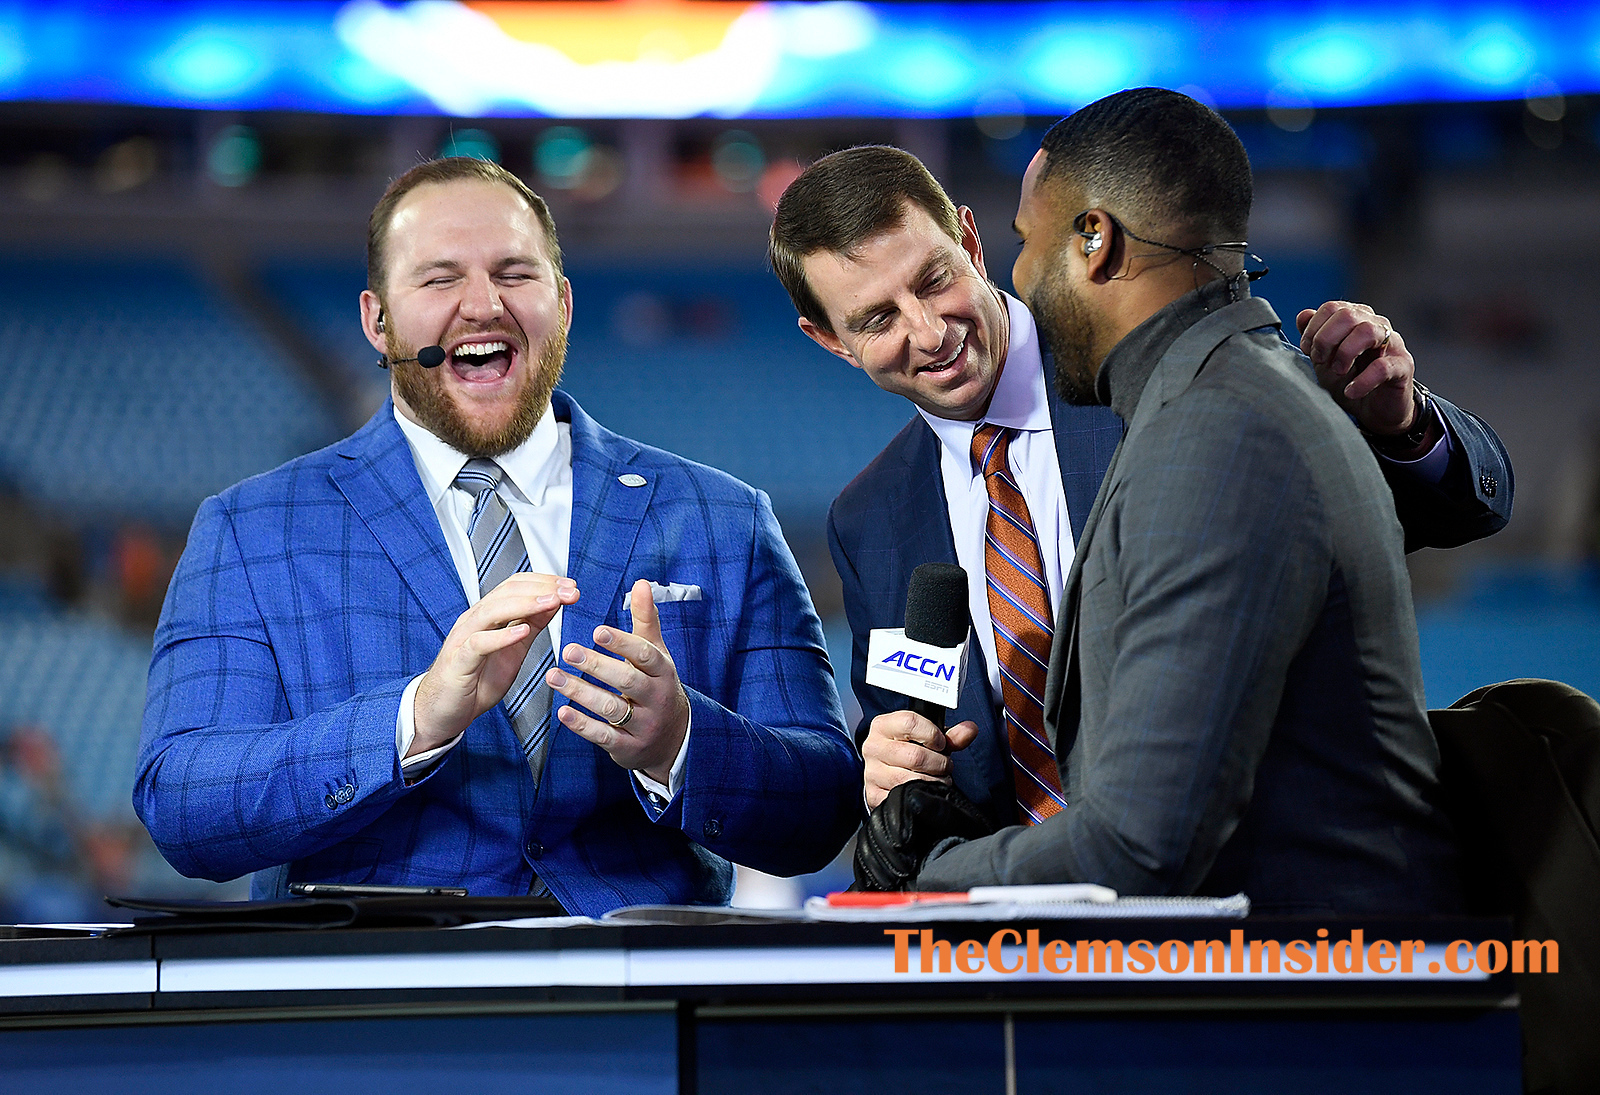 Clemson head coach Dabo Swinney surprises Eric Mac Lain and EJ Manuel after crashing the ACC Network field broadcast after he arrived at Bank of America Stadium in Charlotte Saturday, December 7, 2019. Bart Boatwright/The Clemson Insider